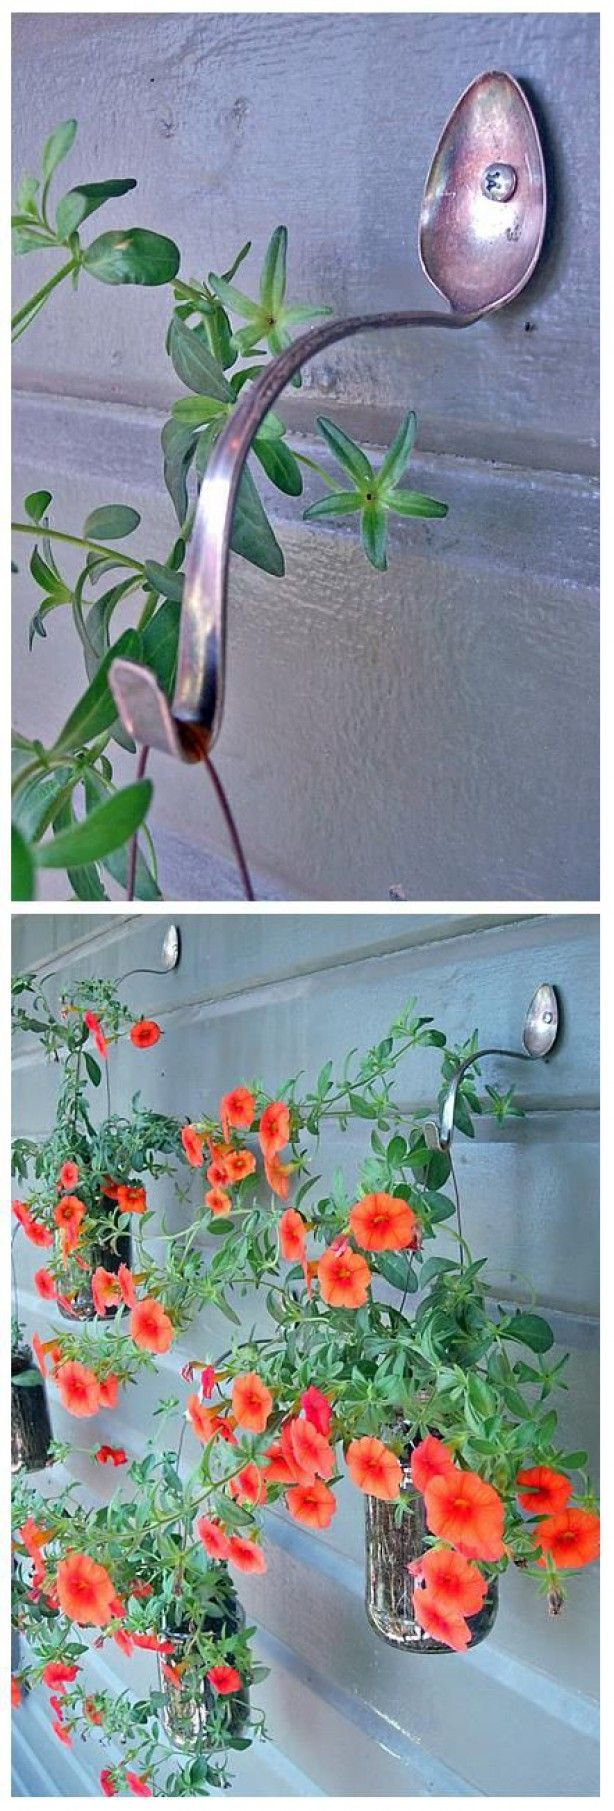 Recycle old spoons to hang your hanging baskets! // Cute idea selected by MommyInTheCity.nl \\